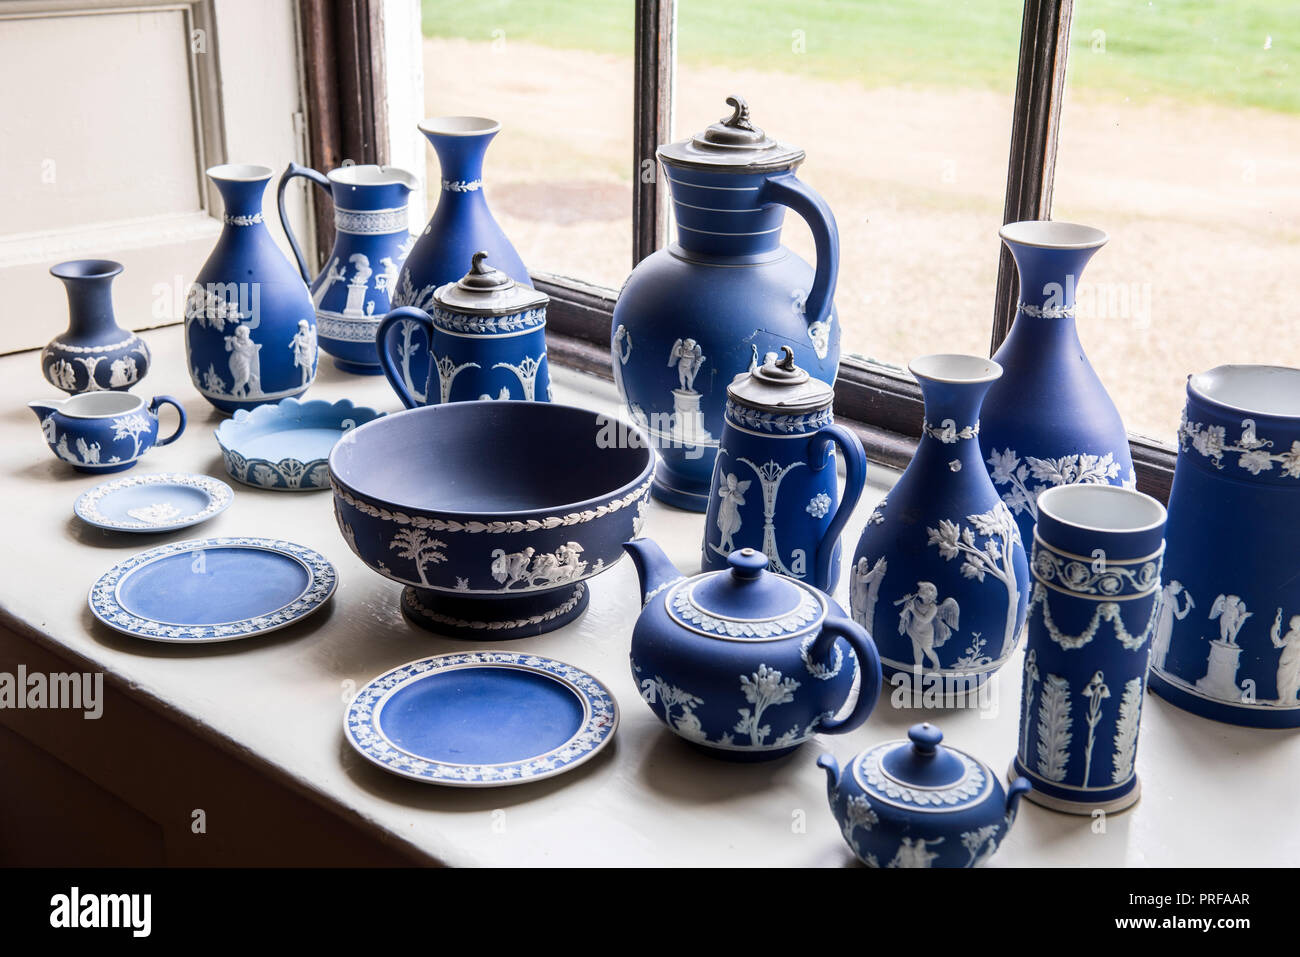 Wedgwood marques datant Wedgwood poterie et porcelaine